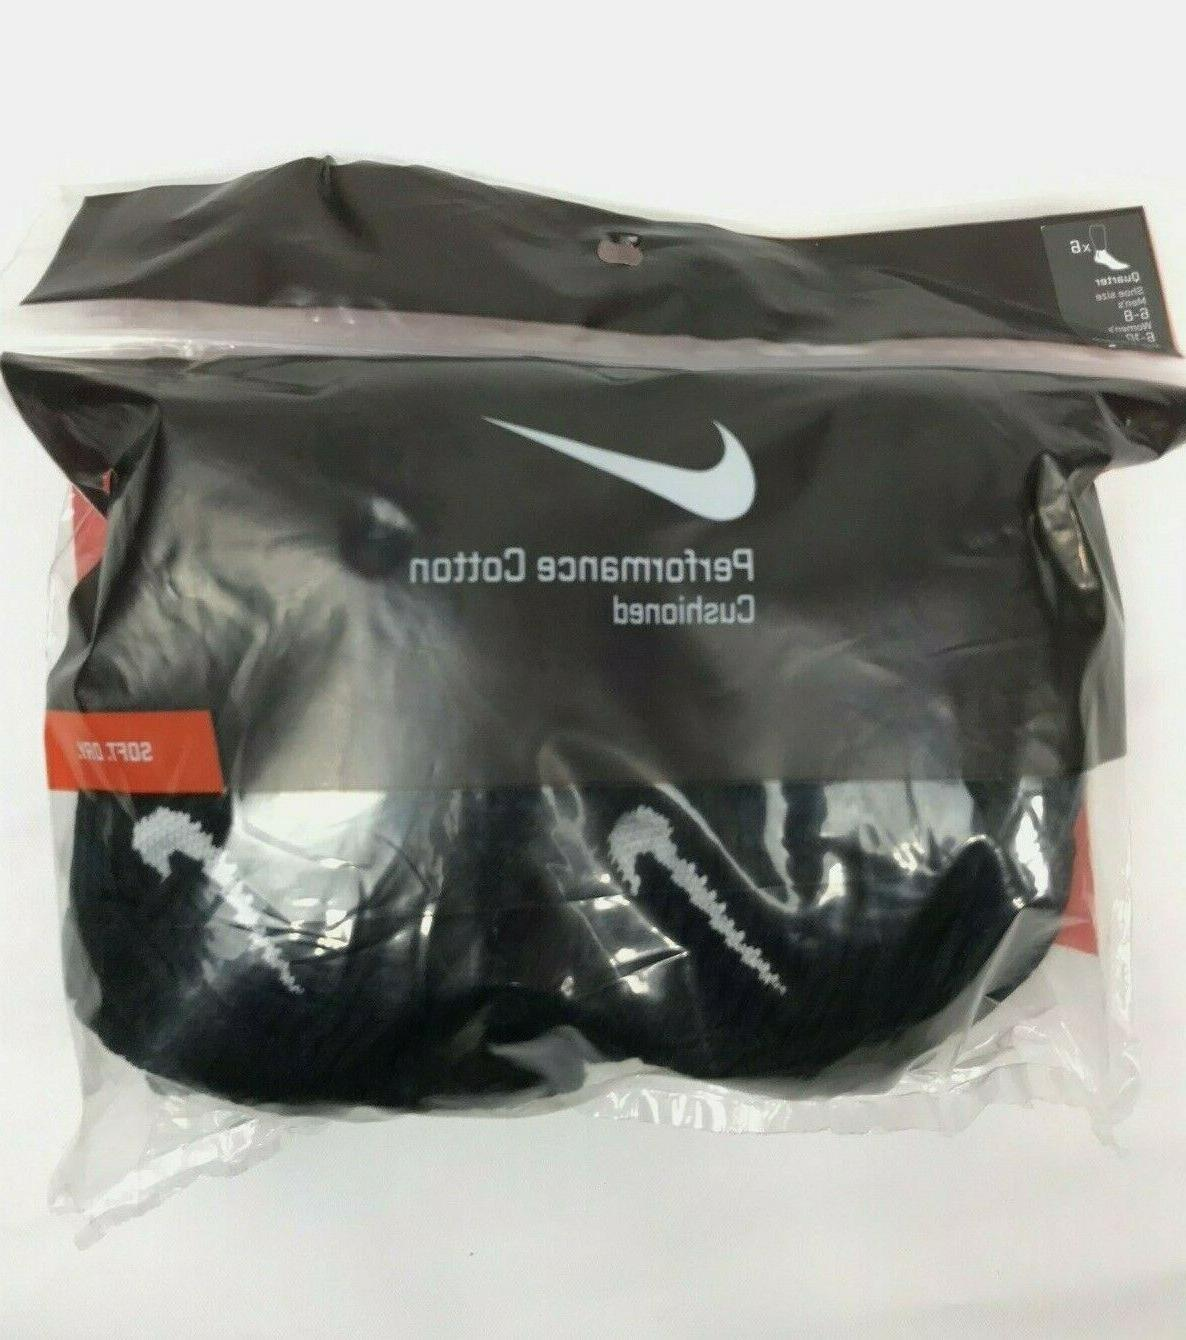 cushioned quarter socks